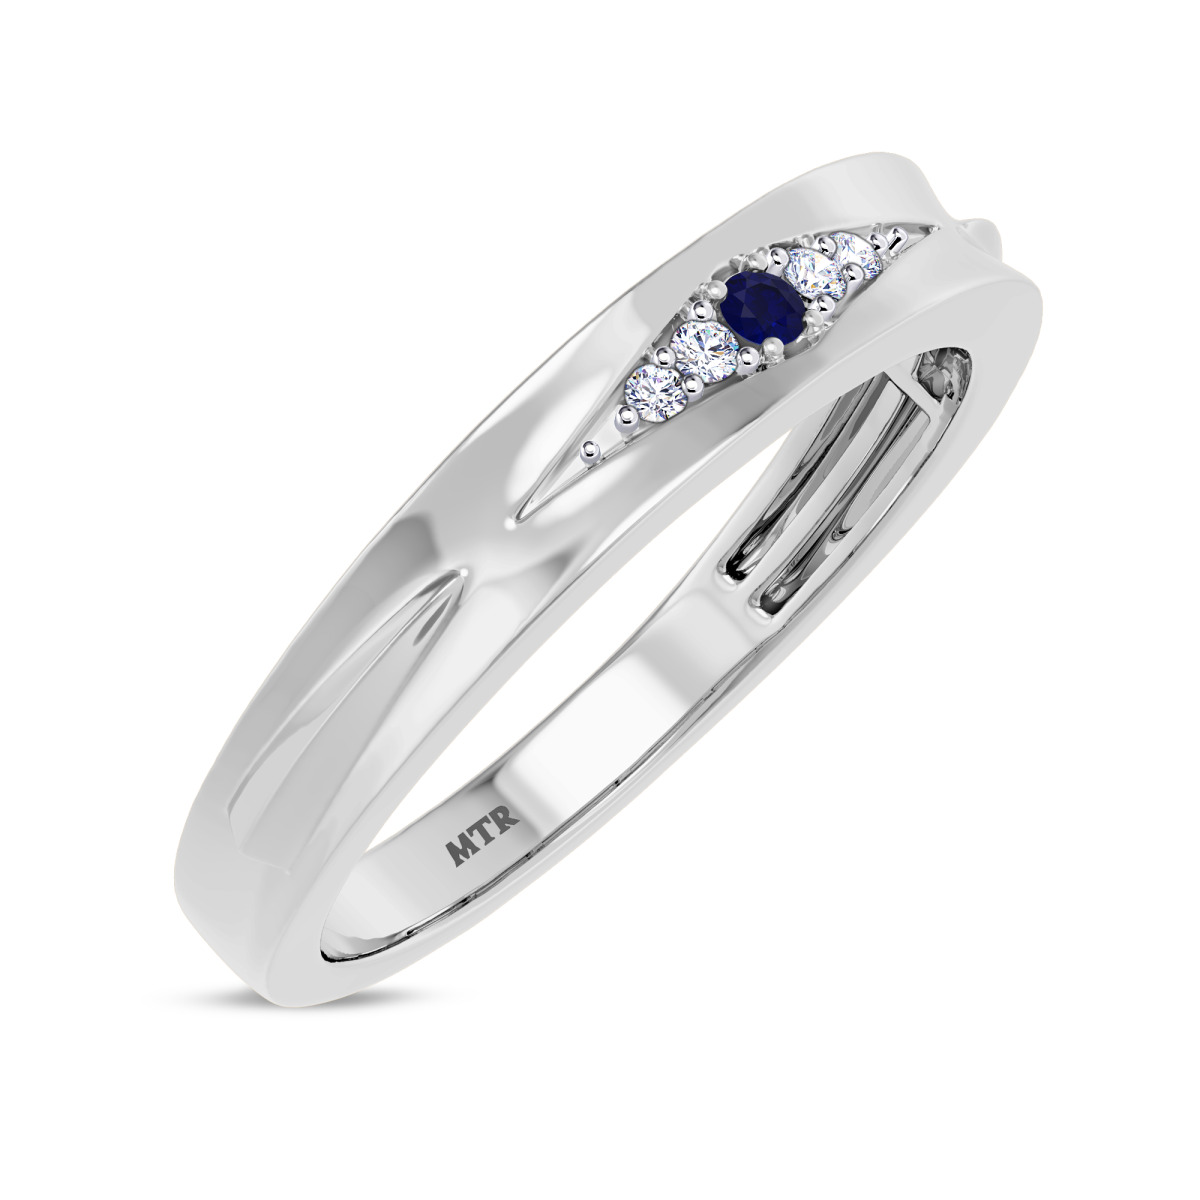 1/10 CT. T.W. Sapphire Mens Wedding Band 10K White Gold